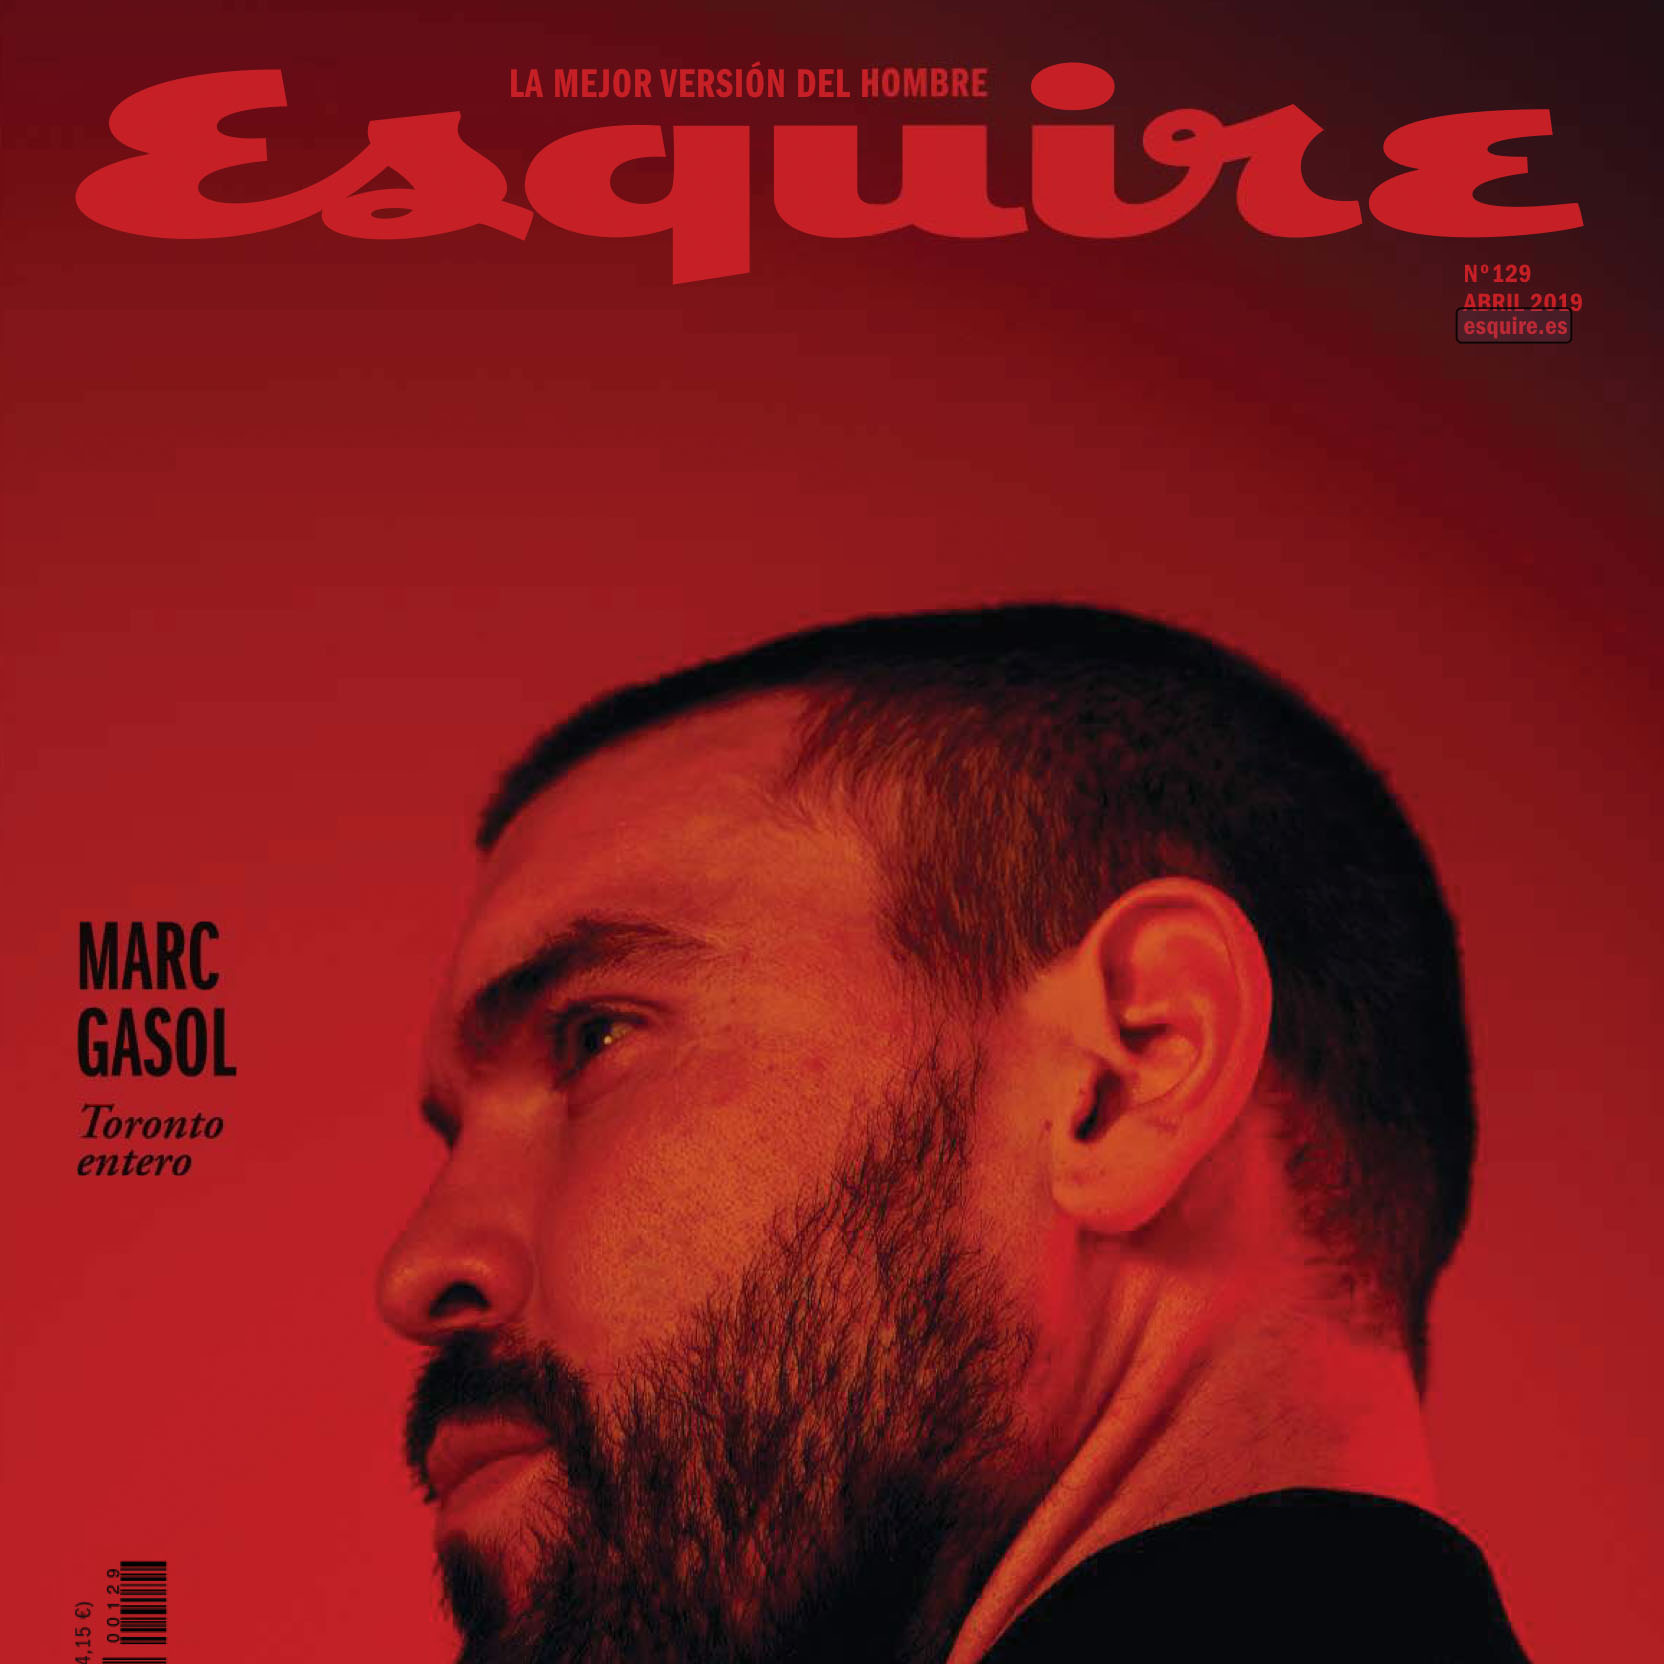 Esquire España, Apr. 2019